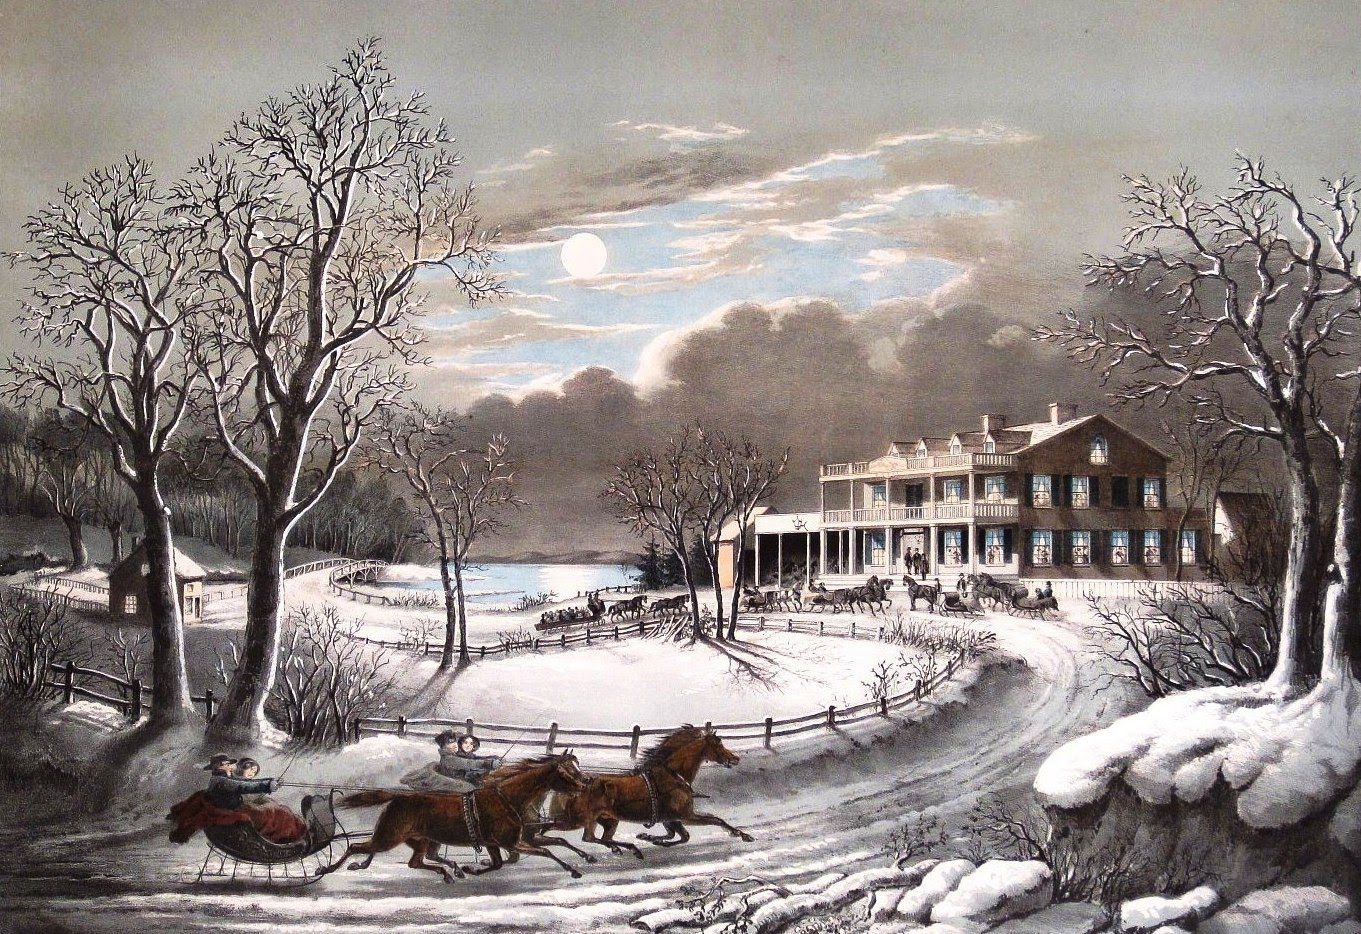 Currier And Ives Jpg 1361 934 Currier And Ives Prints Winter Scenes Currier And Ives